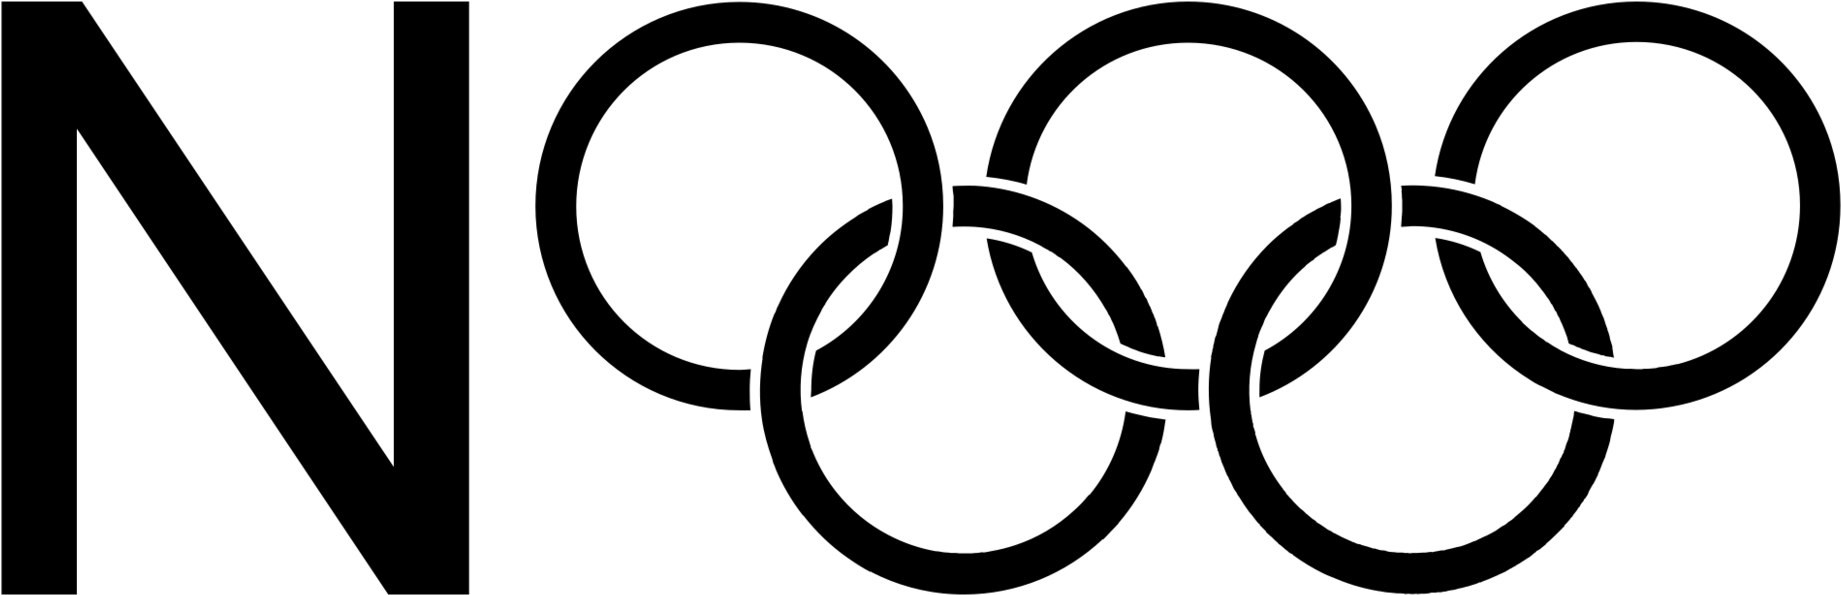 hight resolution of winter clip art free winter olympic games logo organization summer olympic 2020 neo tokyo olympics clipart